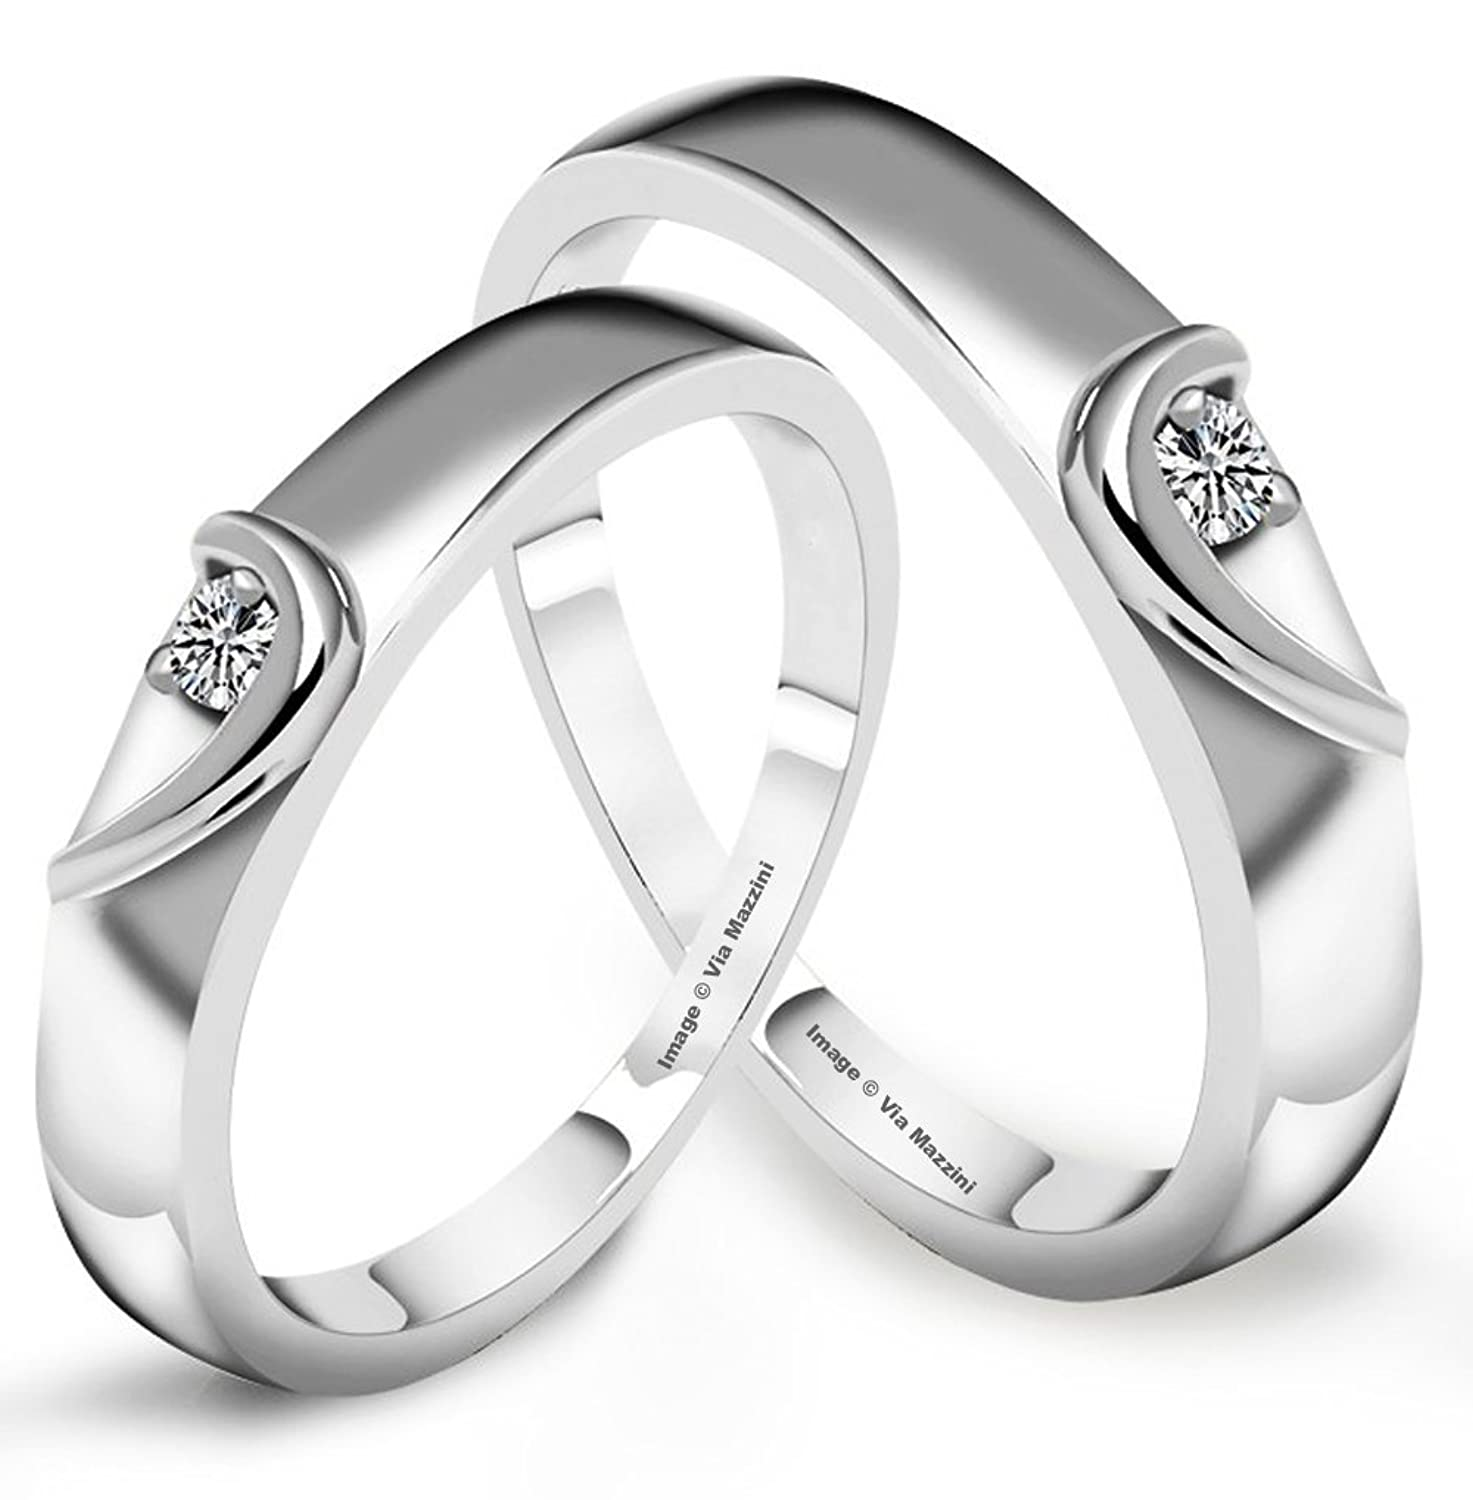 women womens buy at jewellery adjustable shop silver ring in romentic engagement jewelry rings price couple lover best